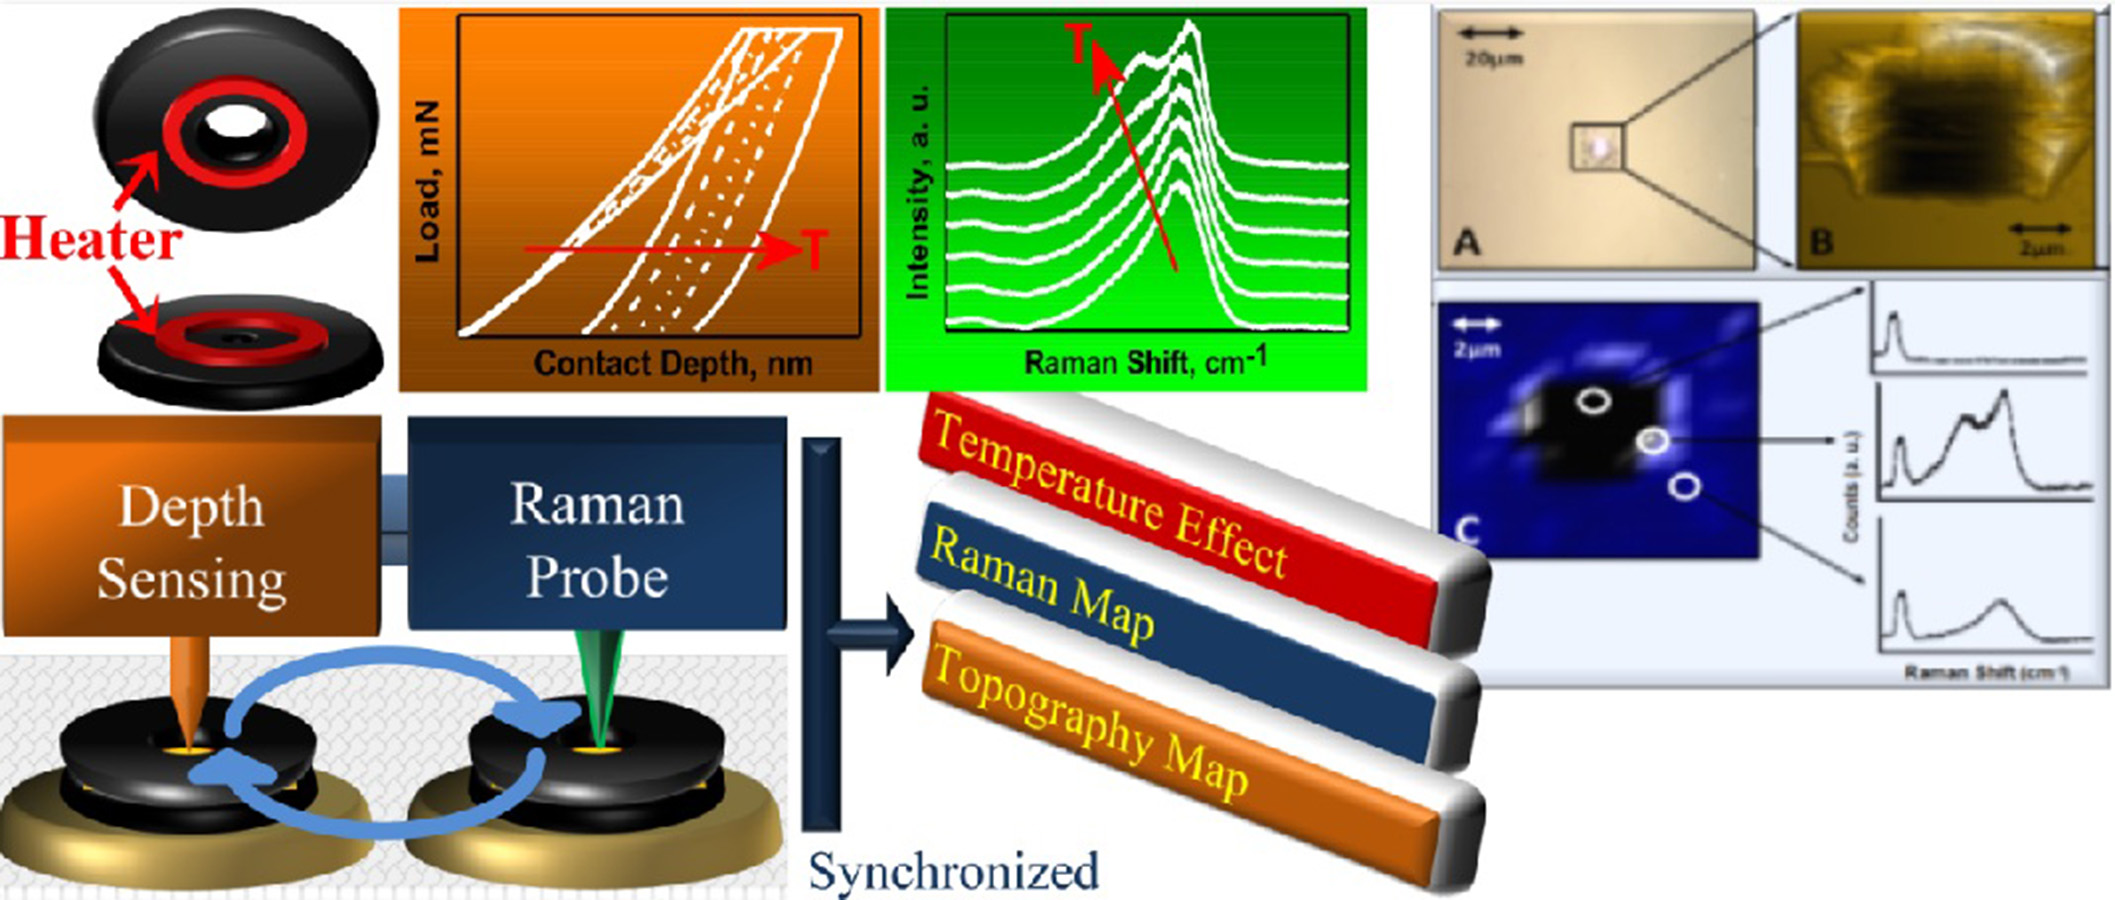 A co-located system for synchronized characterization of mechanical property, materials compositiontemperature effect.